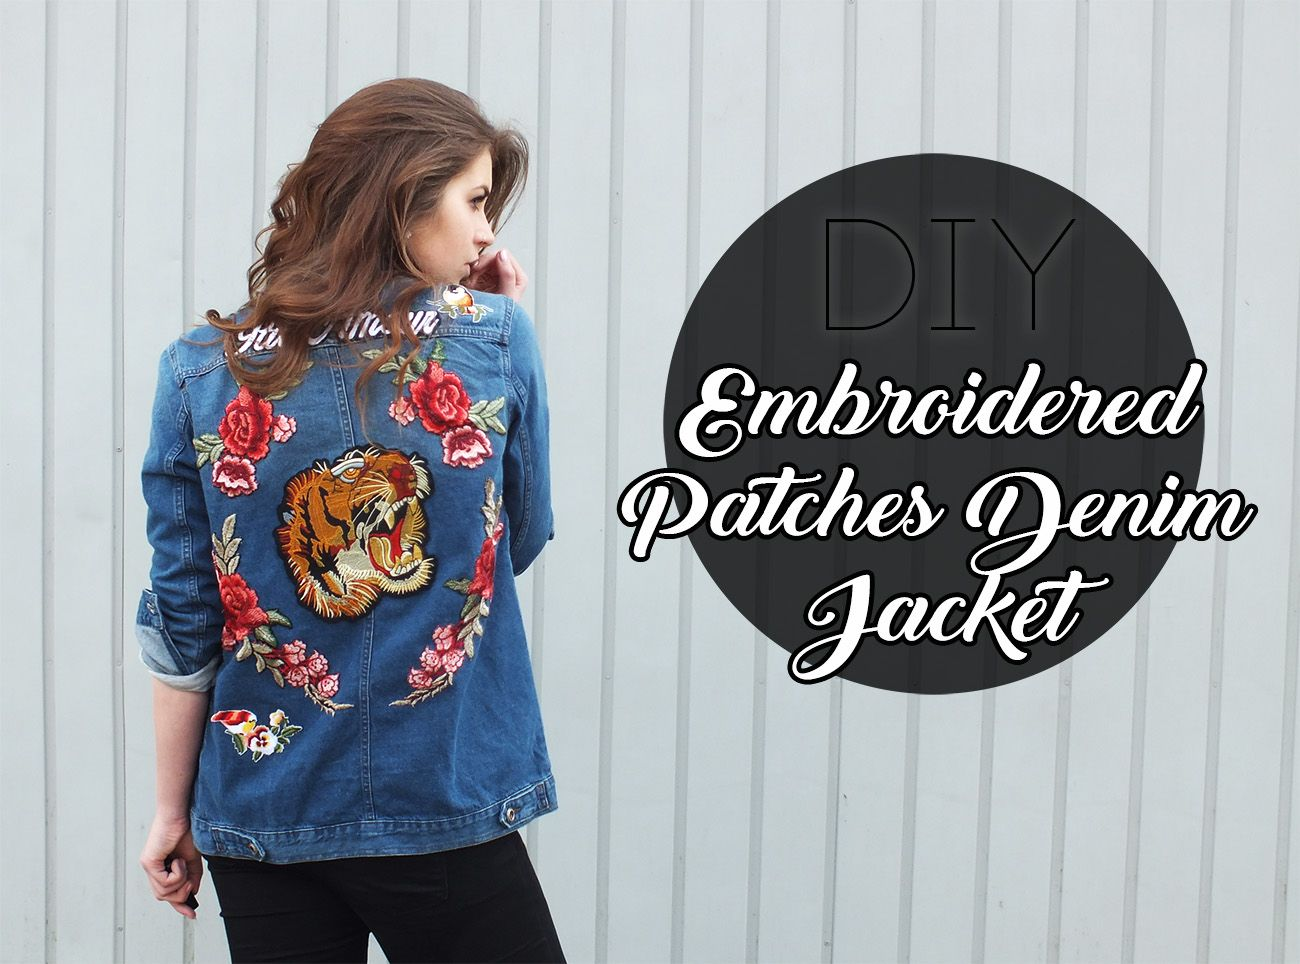 7dc02b8c13c6 Fashion Love  DIY  PATCHES DENIM JACKET   INSPIRED BY GUCCI S S´ 17 ...